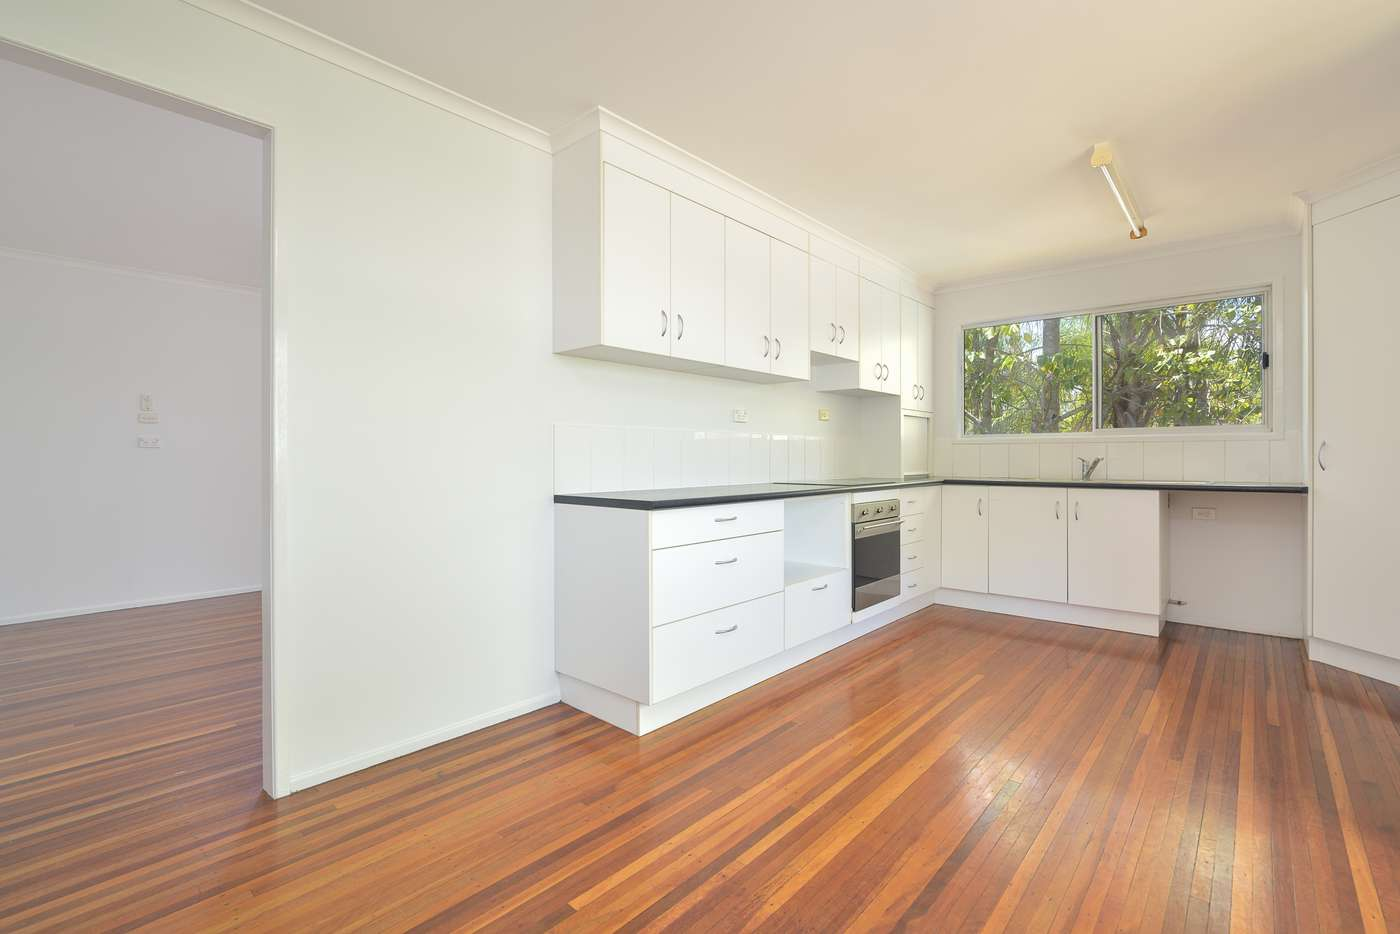 Fifth view of Homely house listing, 24 Bradford Road, Telina QLD 4680